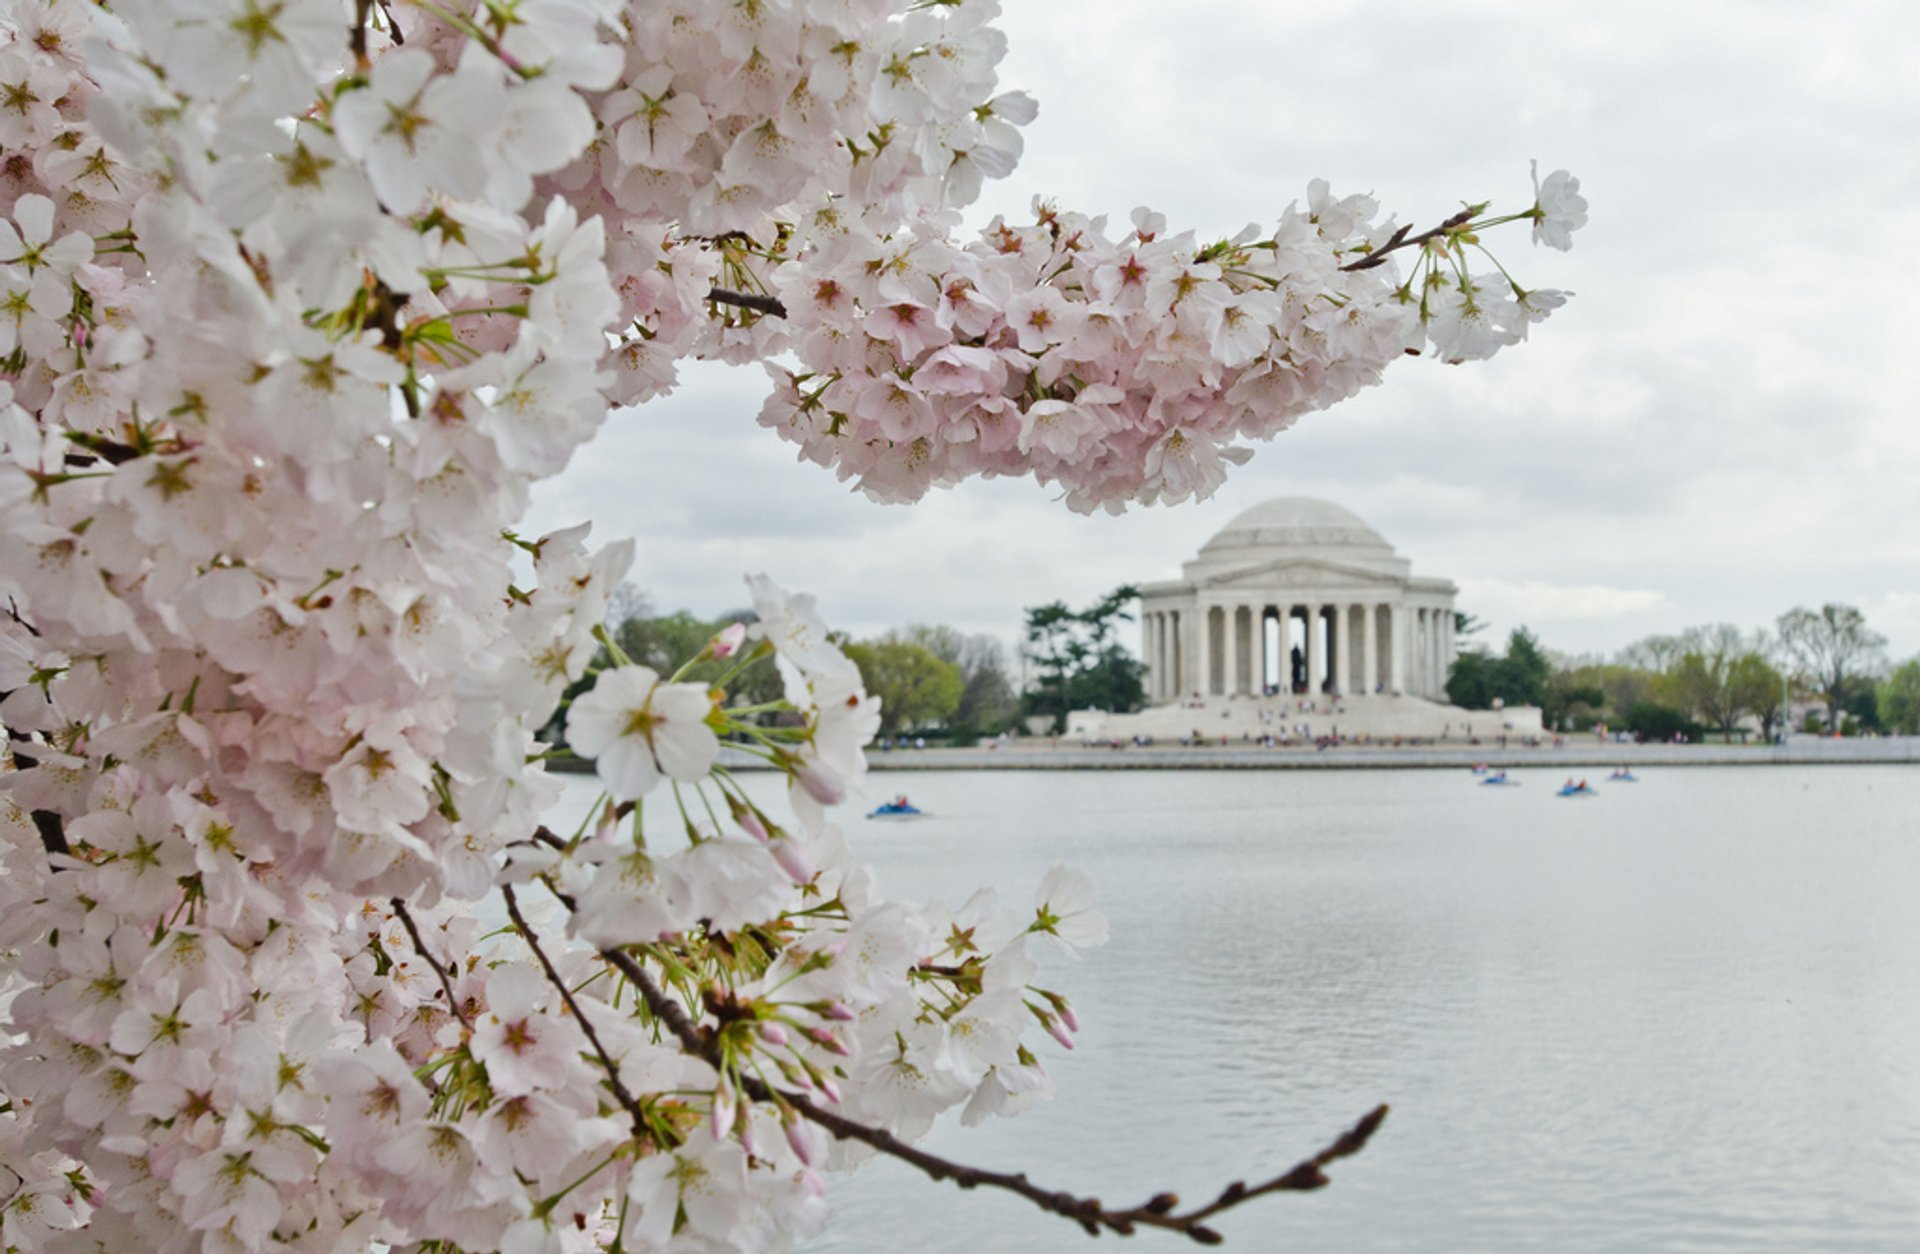 Cherry Blossoms in Washington, D.C. 2020 - Best Time